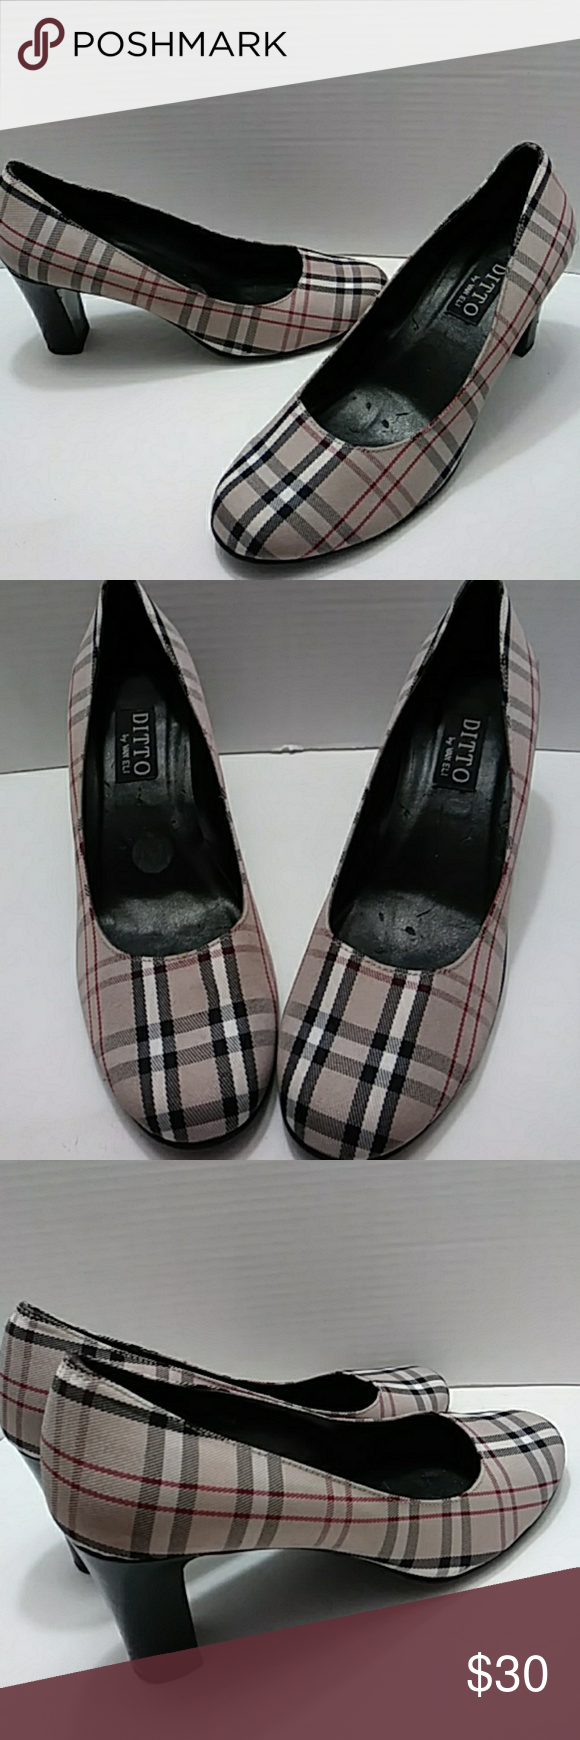 1a9039ff564 Ditto by Van Eli plaid pumps Nice pumps in good condition